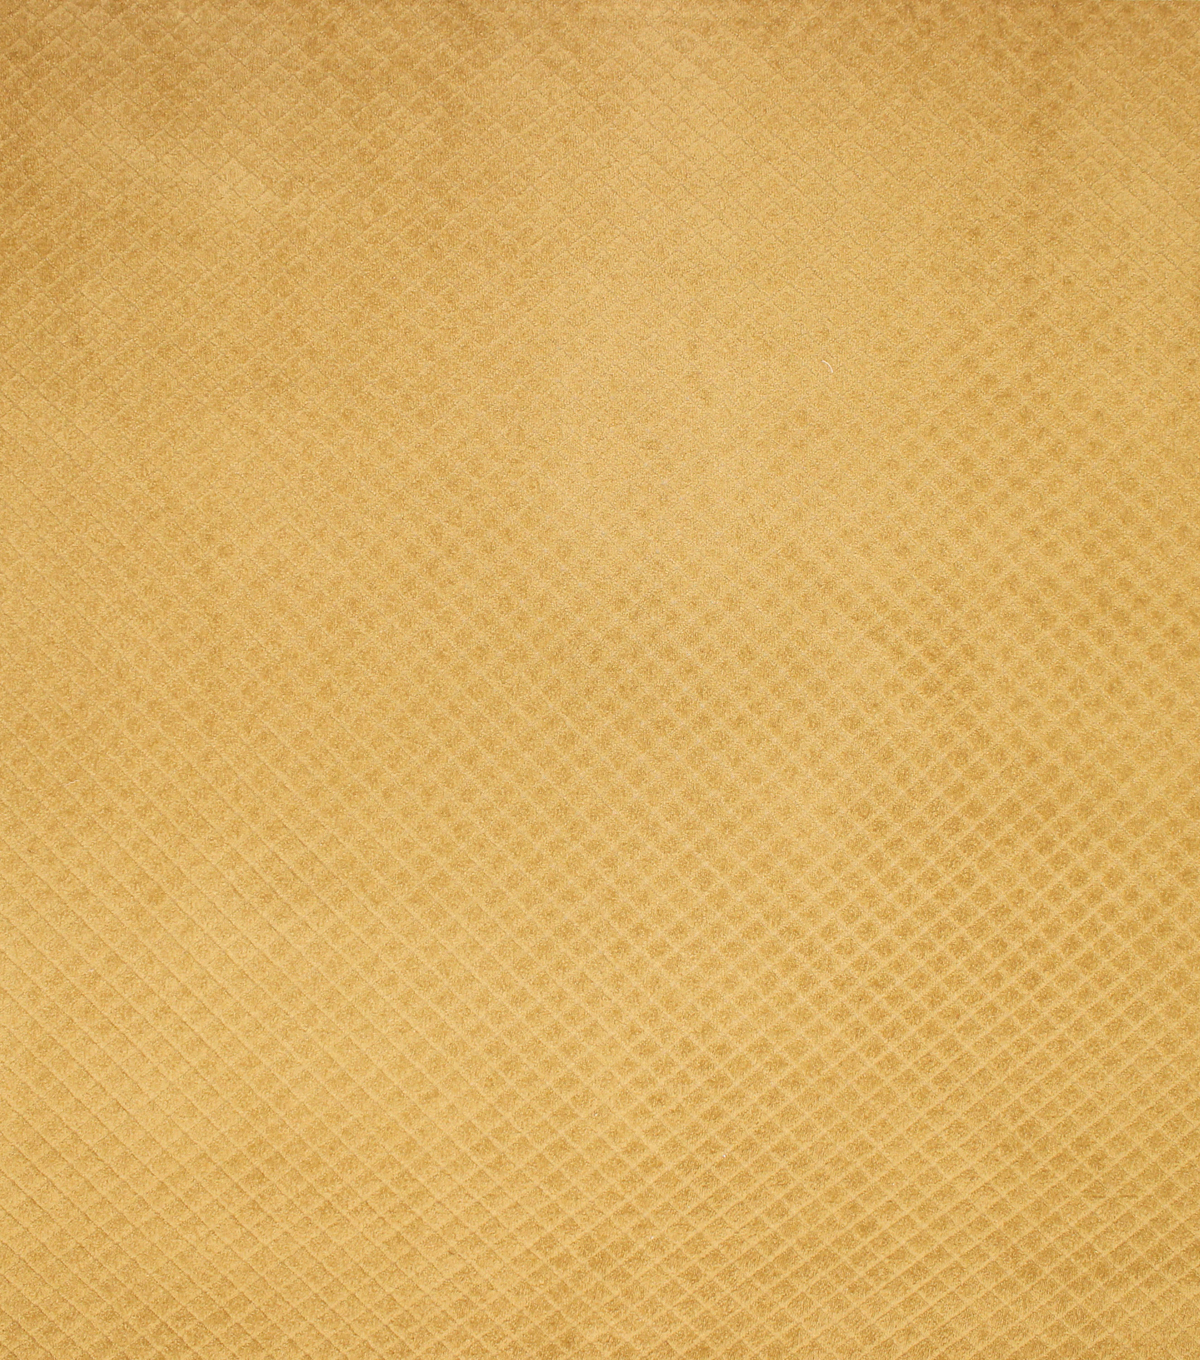 Home Decor 8\u0022x8\u0022 Fabric Swatch-Upholstery Fabric Barrow M8914-5326 Camel